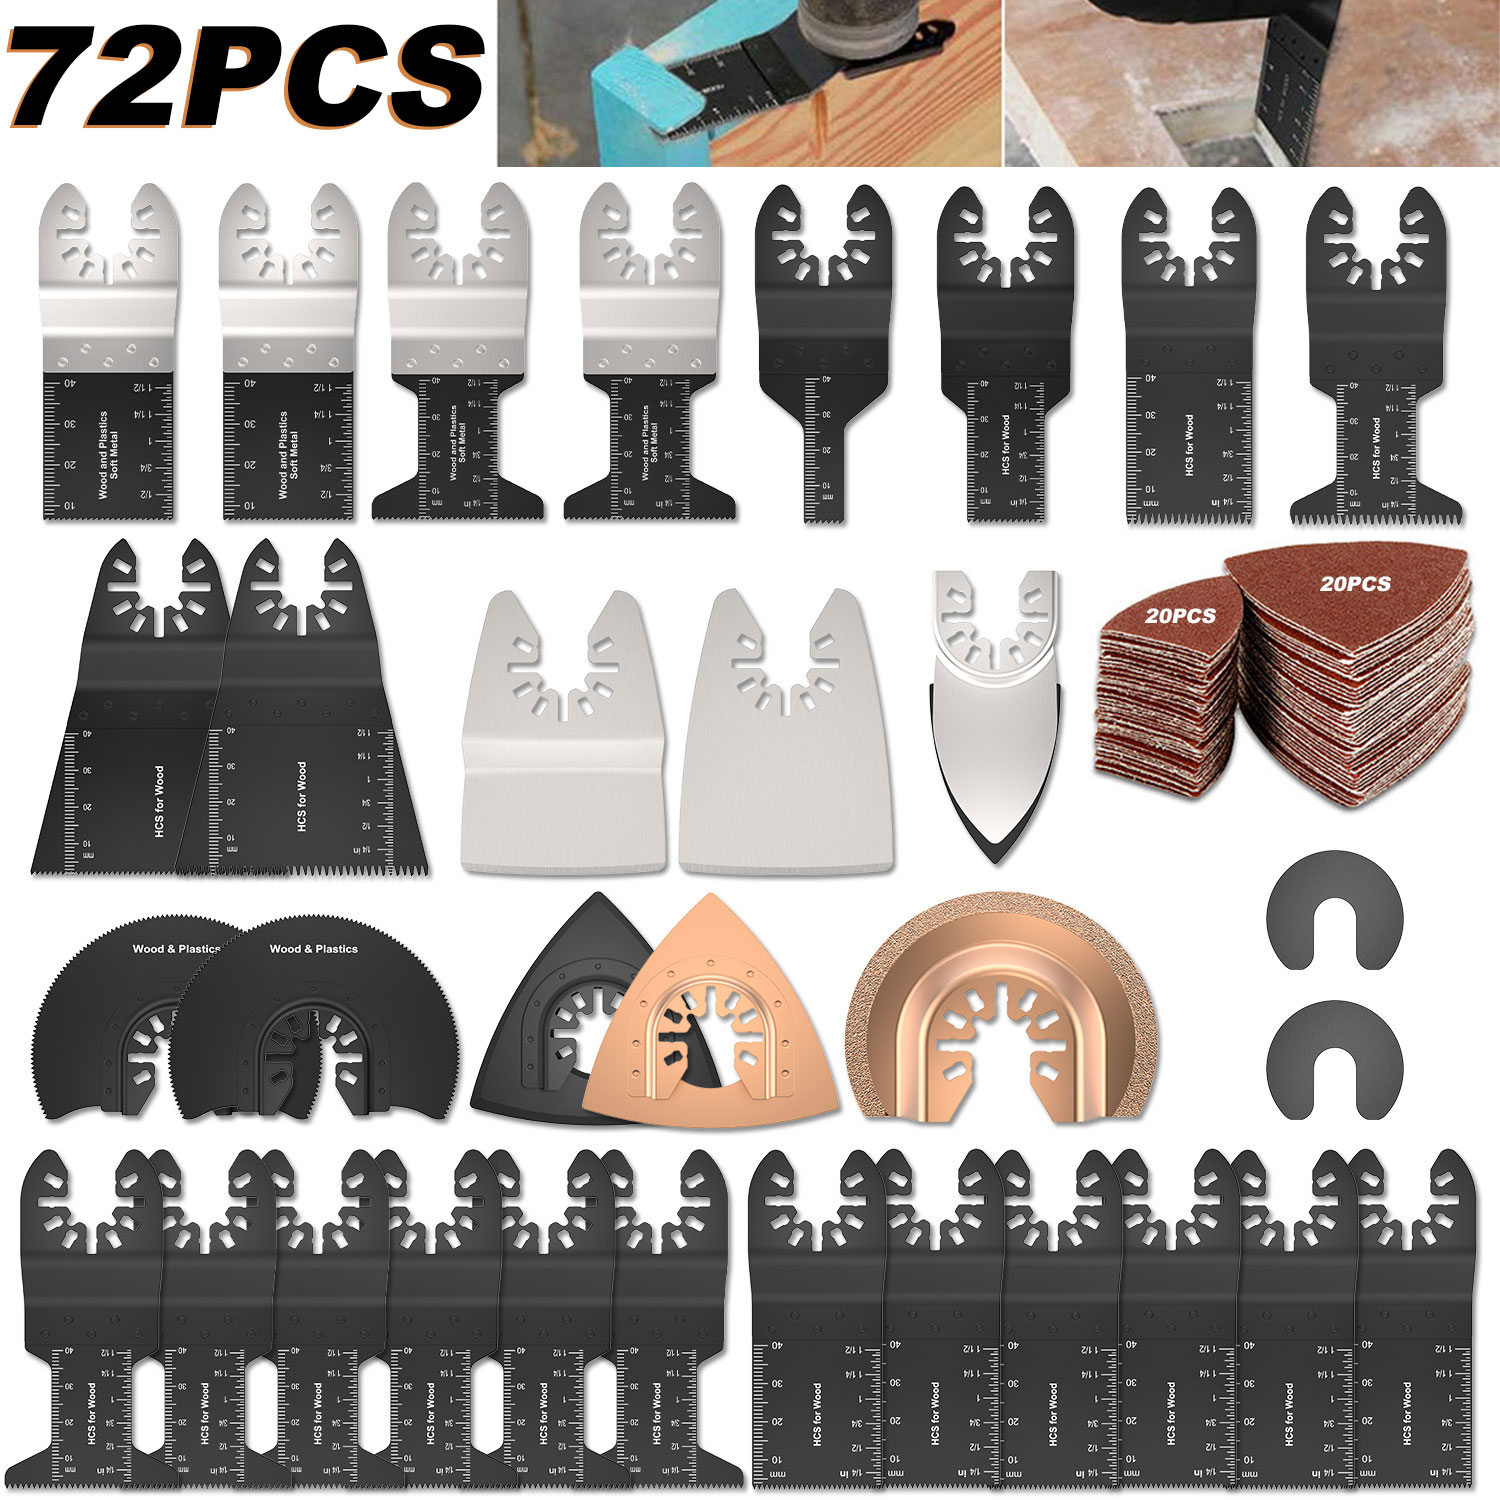 72 PCS/Set Oscillating Multitool Saw Blades Accessories Kit Multitool Blades Universal